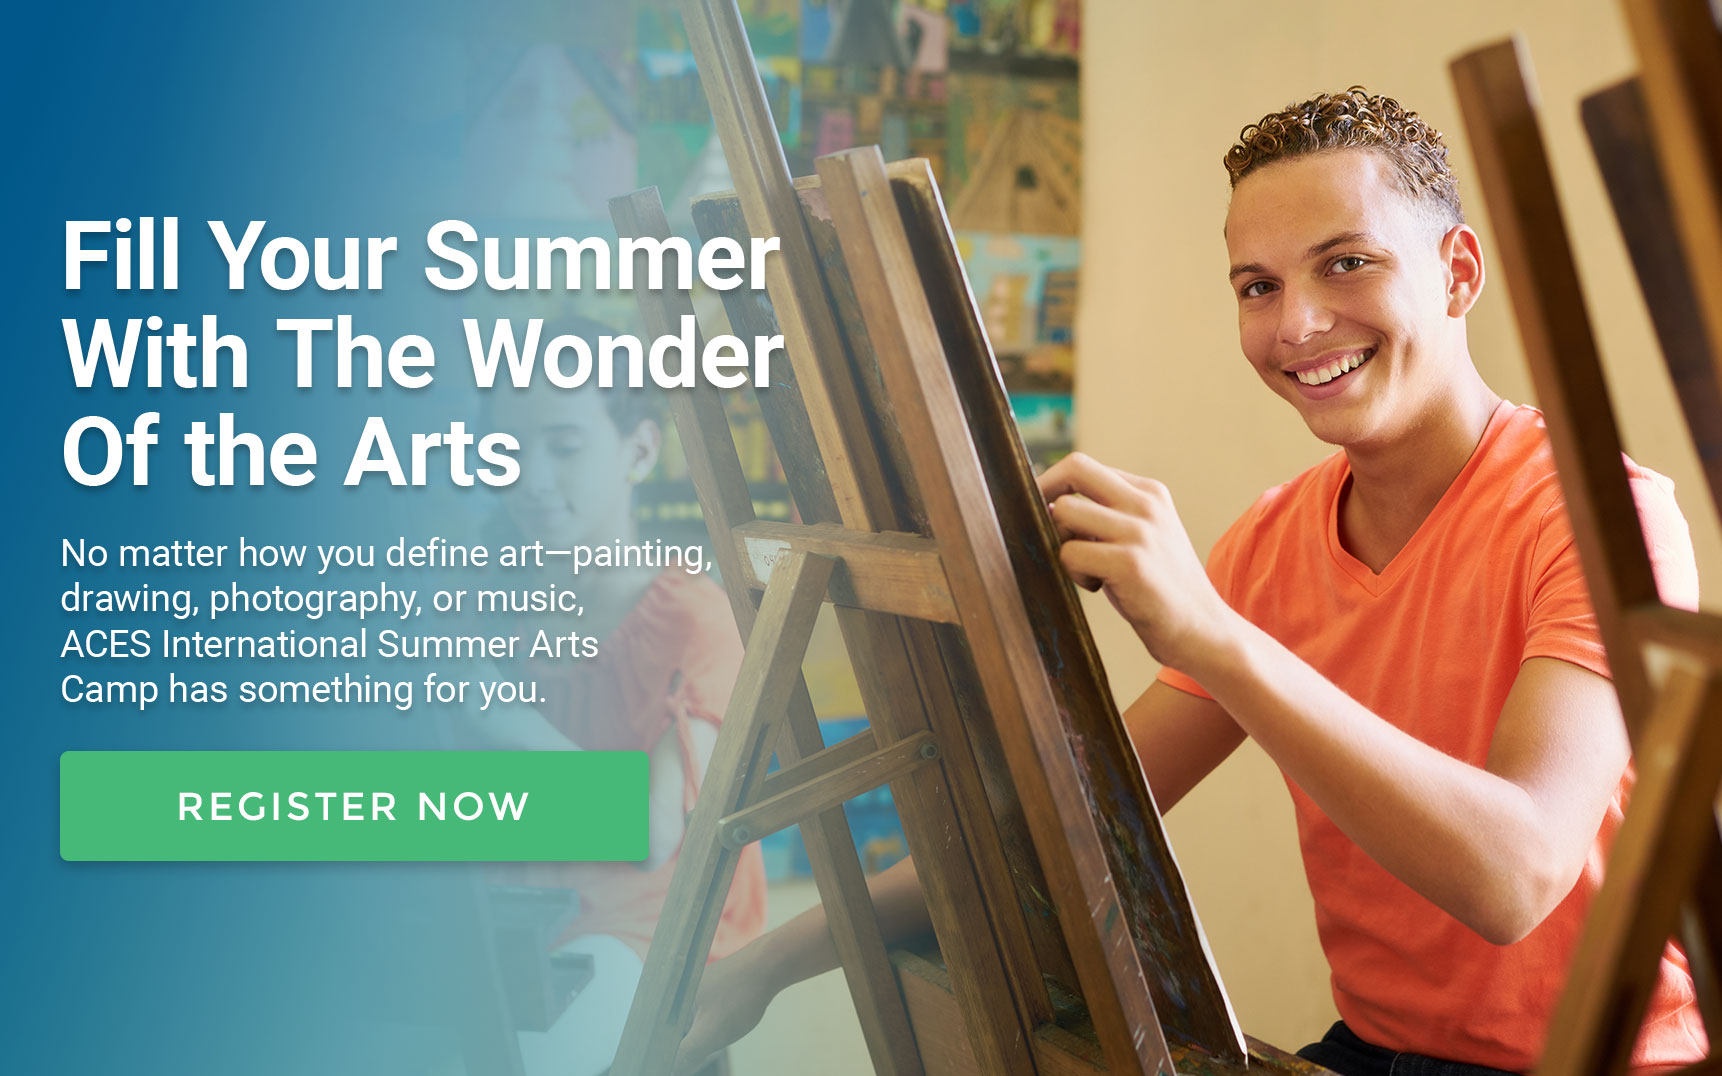 Fill Your Summer With The Wonder Of the Arts. No matter how you define art – painting, drawing, photography, or music, ACES International Summer Arts Camp has something for you. Register Now.